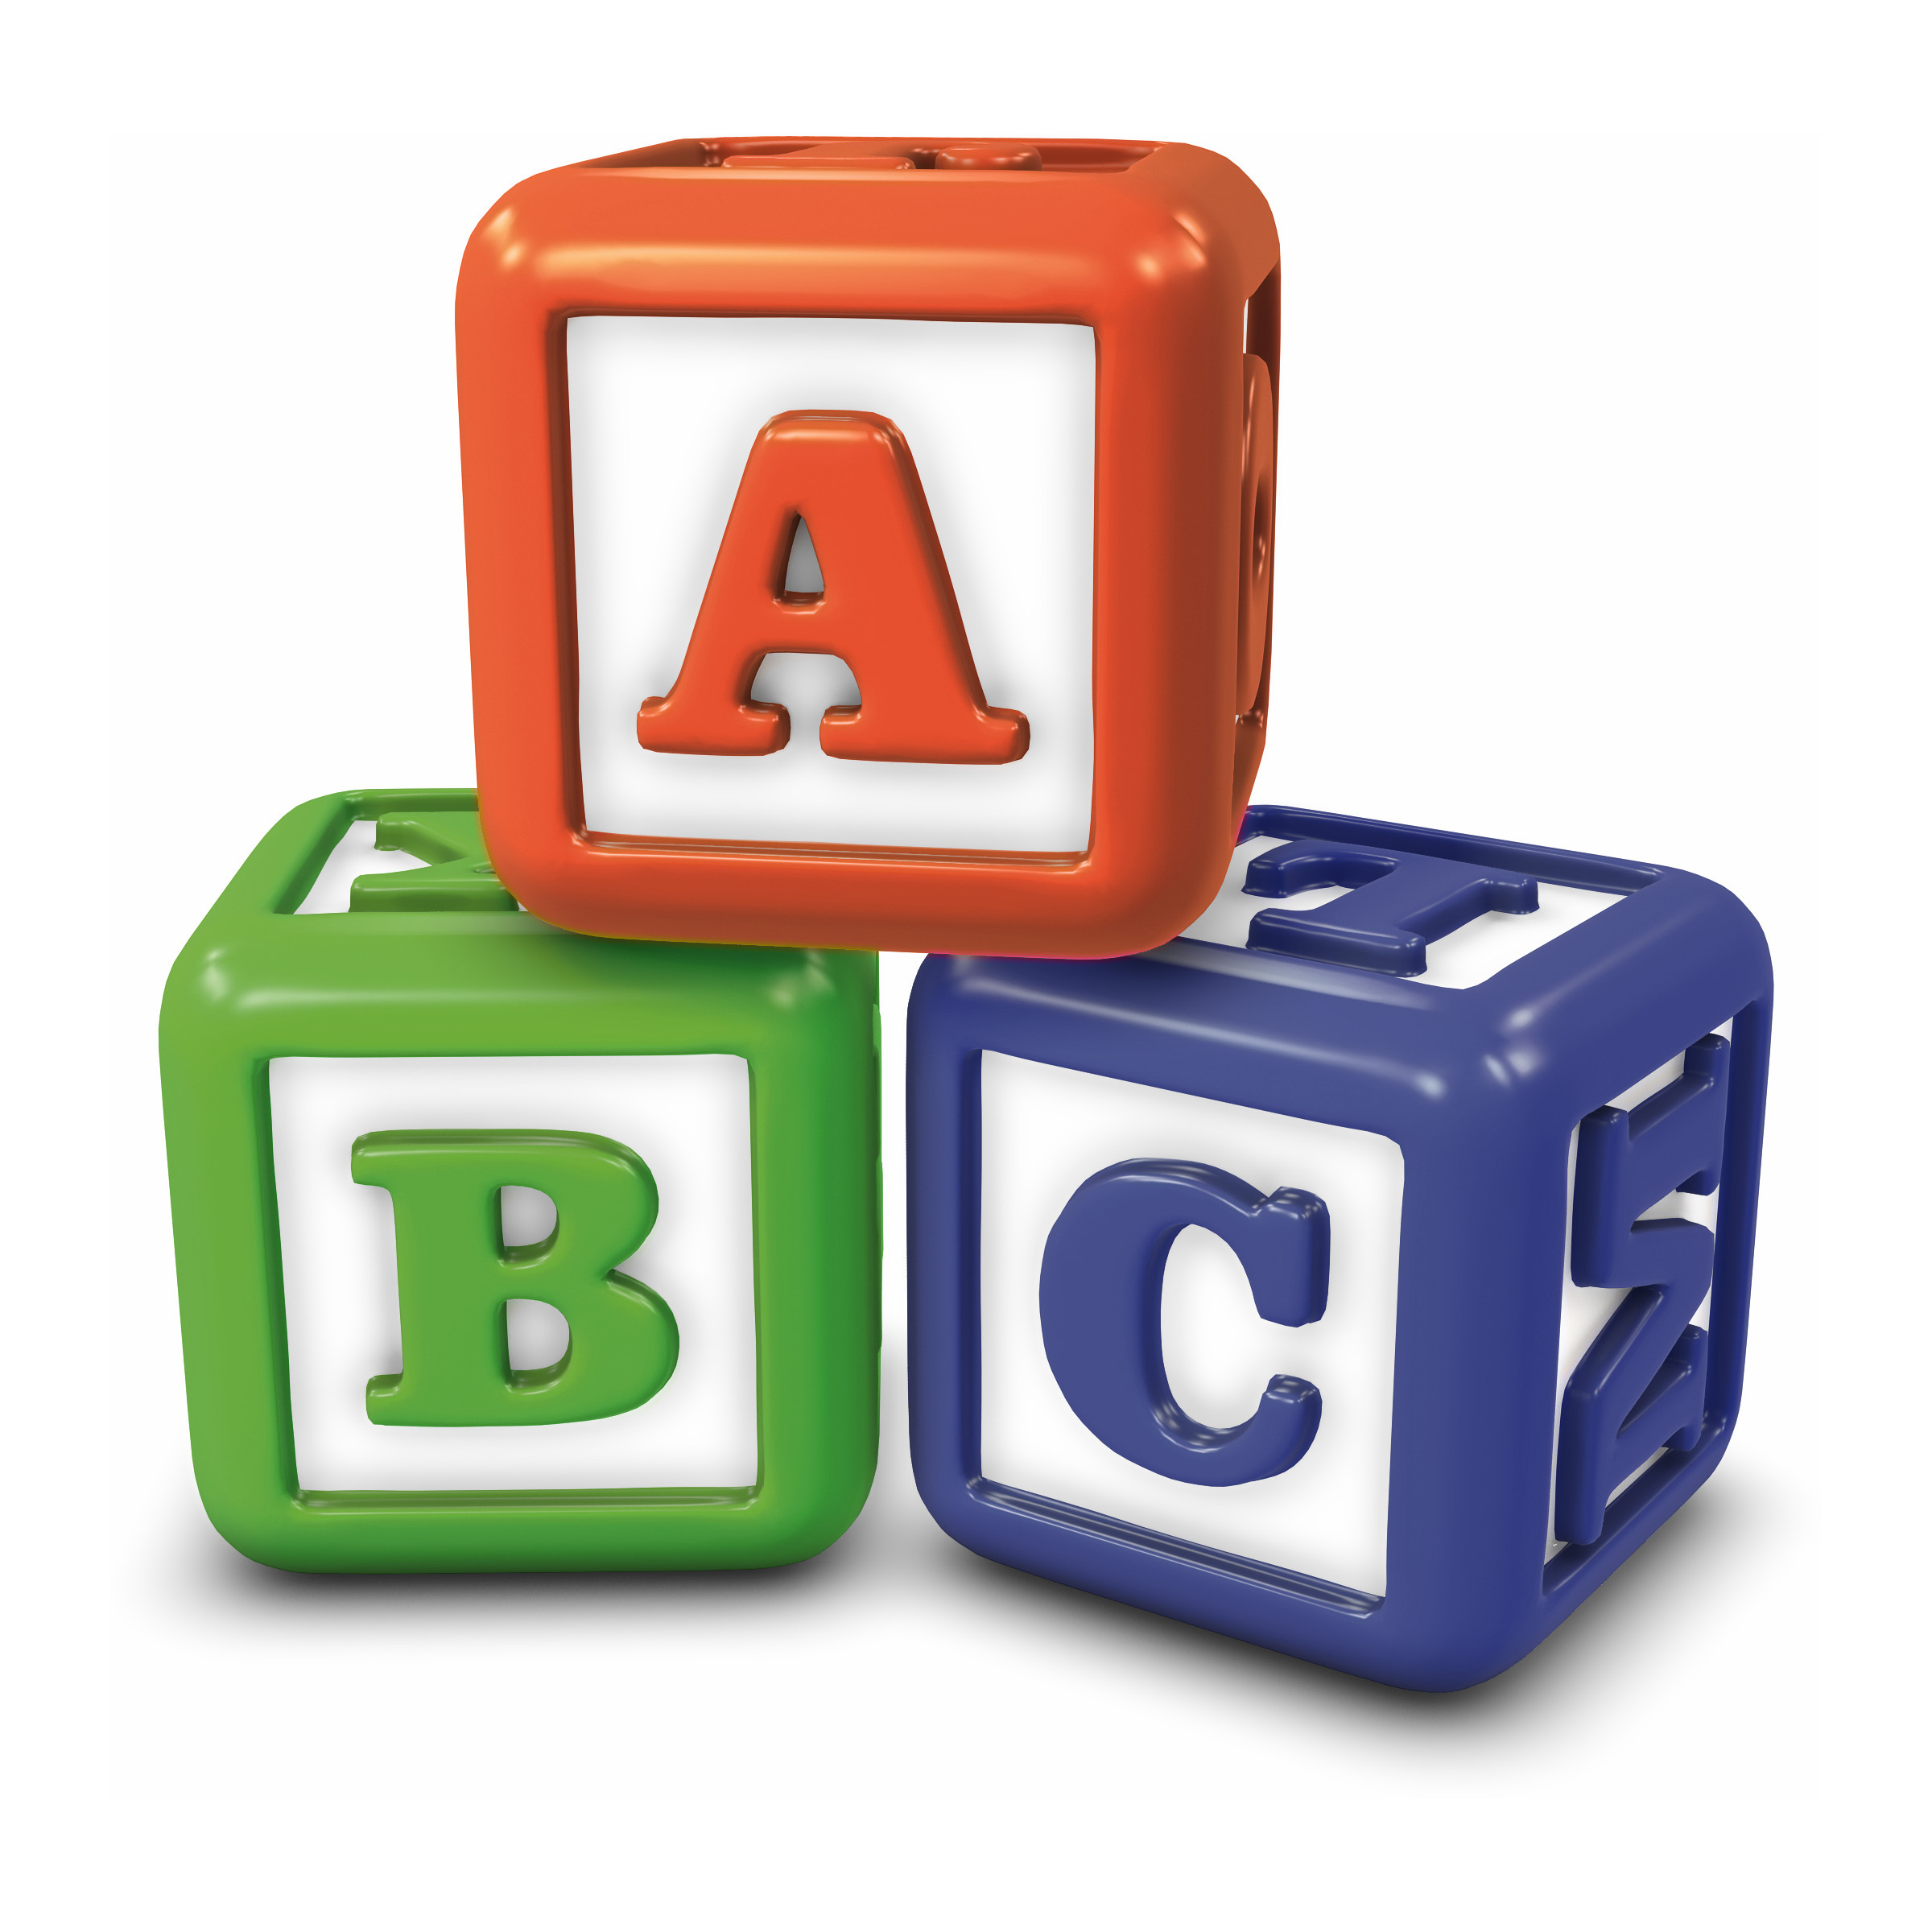 Abc blocks abc building blocks clipart clip art library